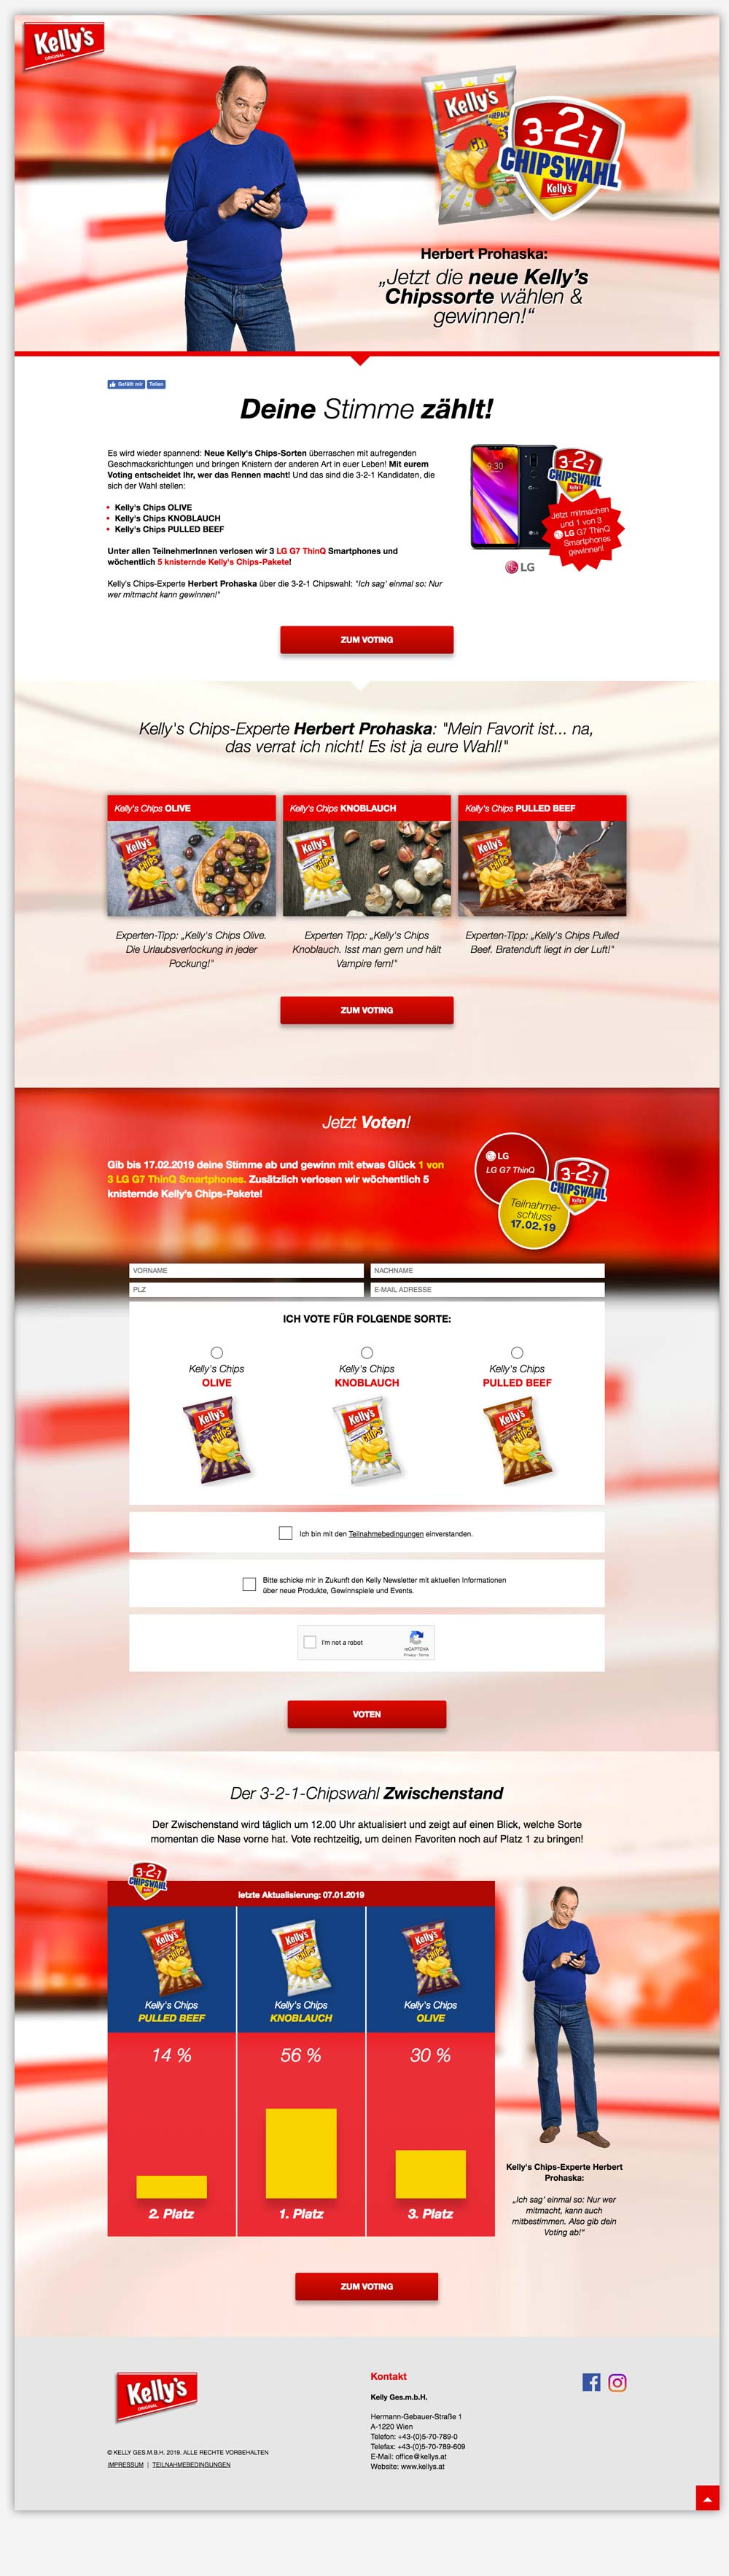 Kellys Chips 321 Chipswahl 2019 Website C21 new media design Online Agentur Wien